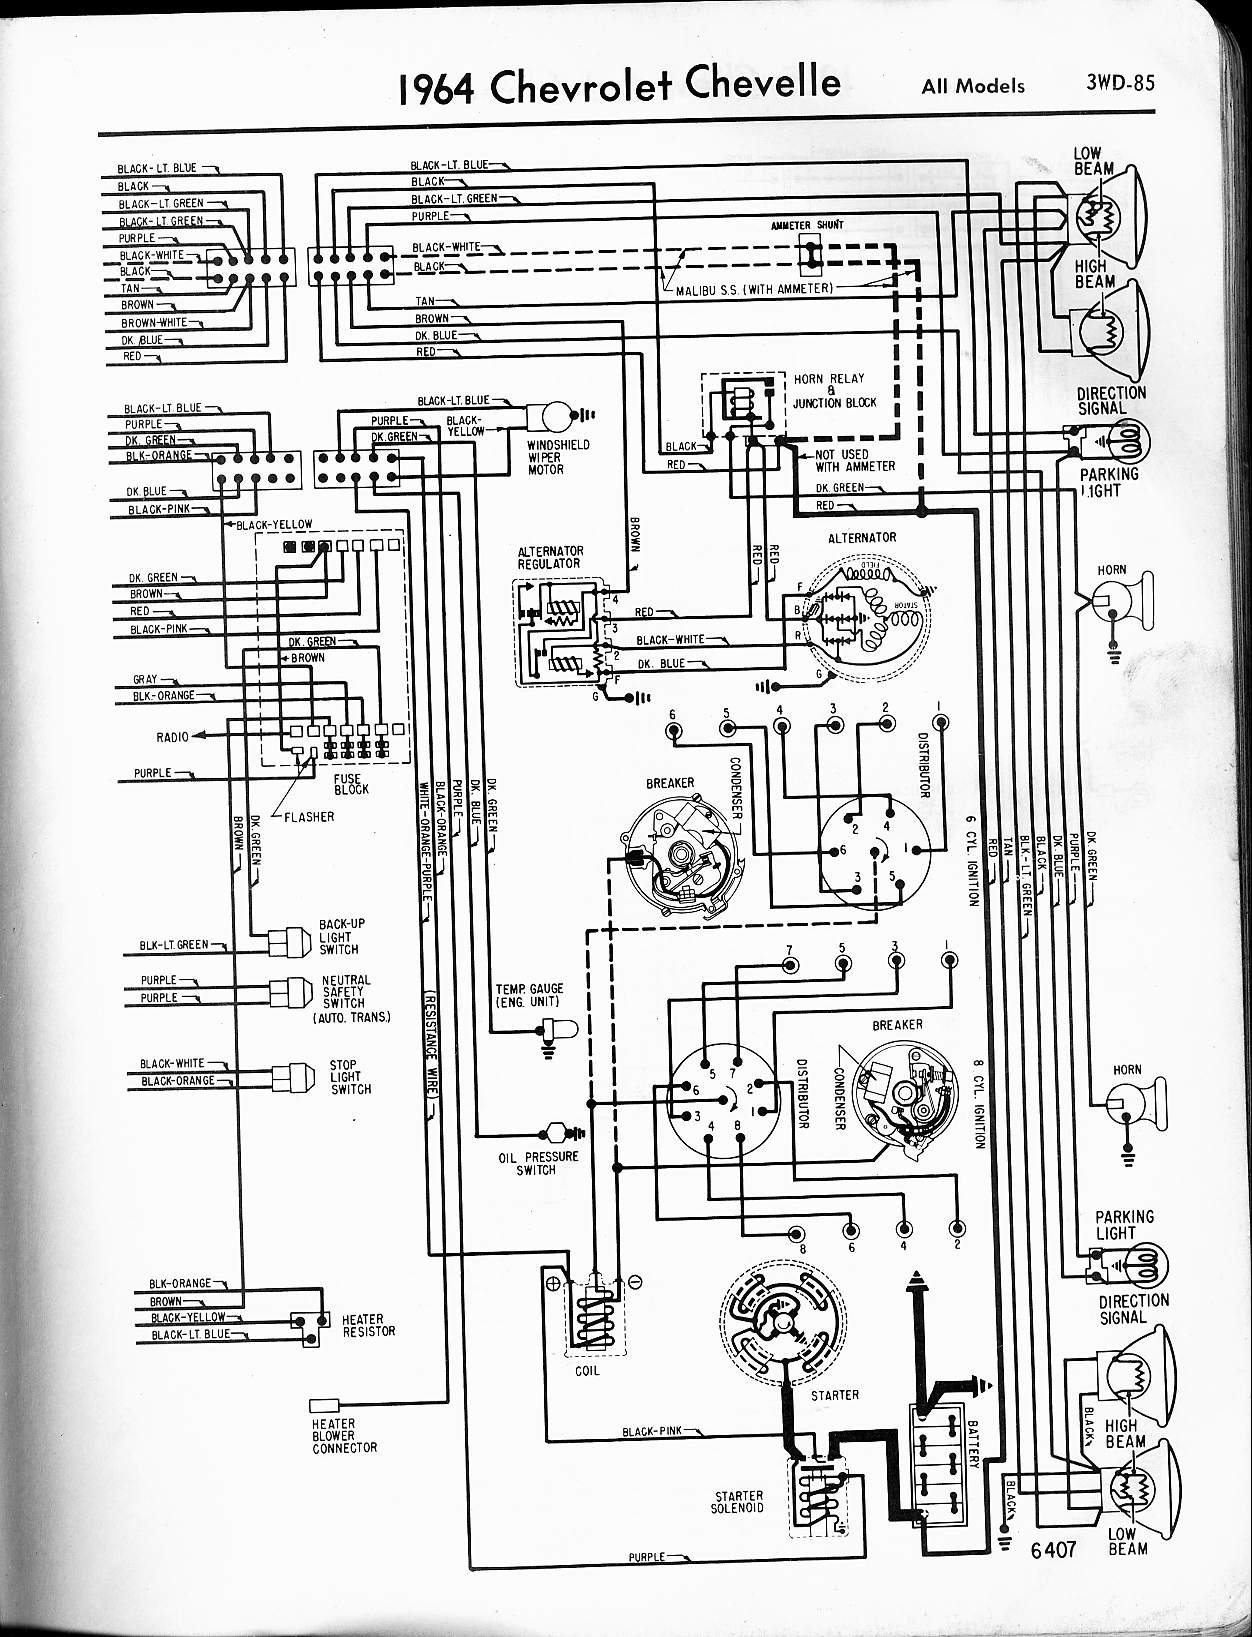 68 Chevelle Fuse Box Location All Kind Of Wiring Diagrams Mercedes E350 1971 Ss Dash Diagram For Light Switch U2022 Rh Prestonfarmmotors Co 1984 Corvette